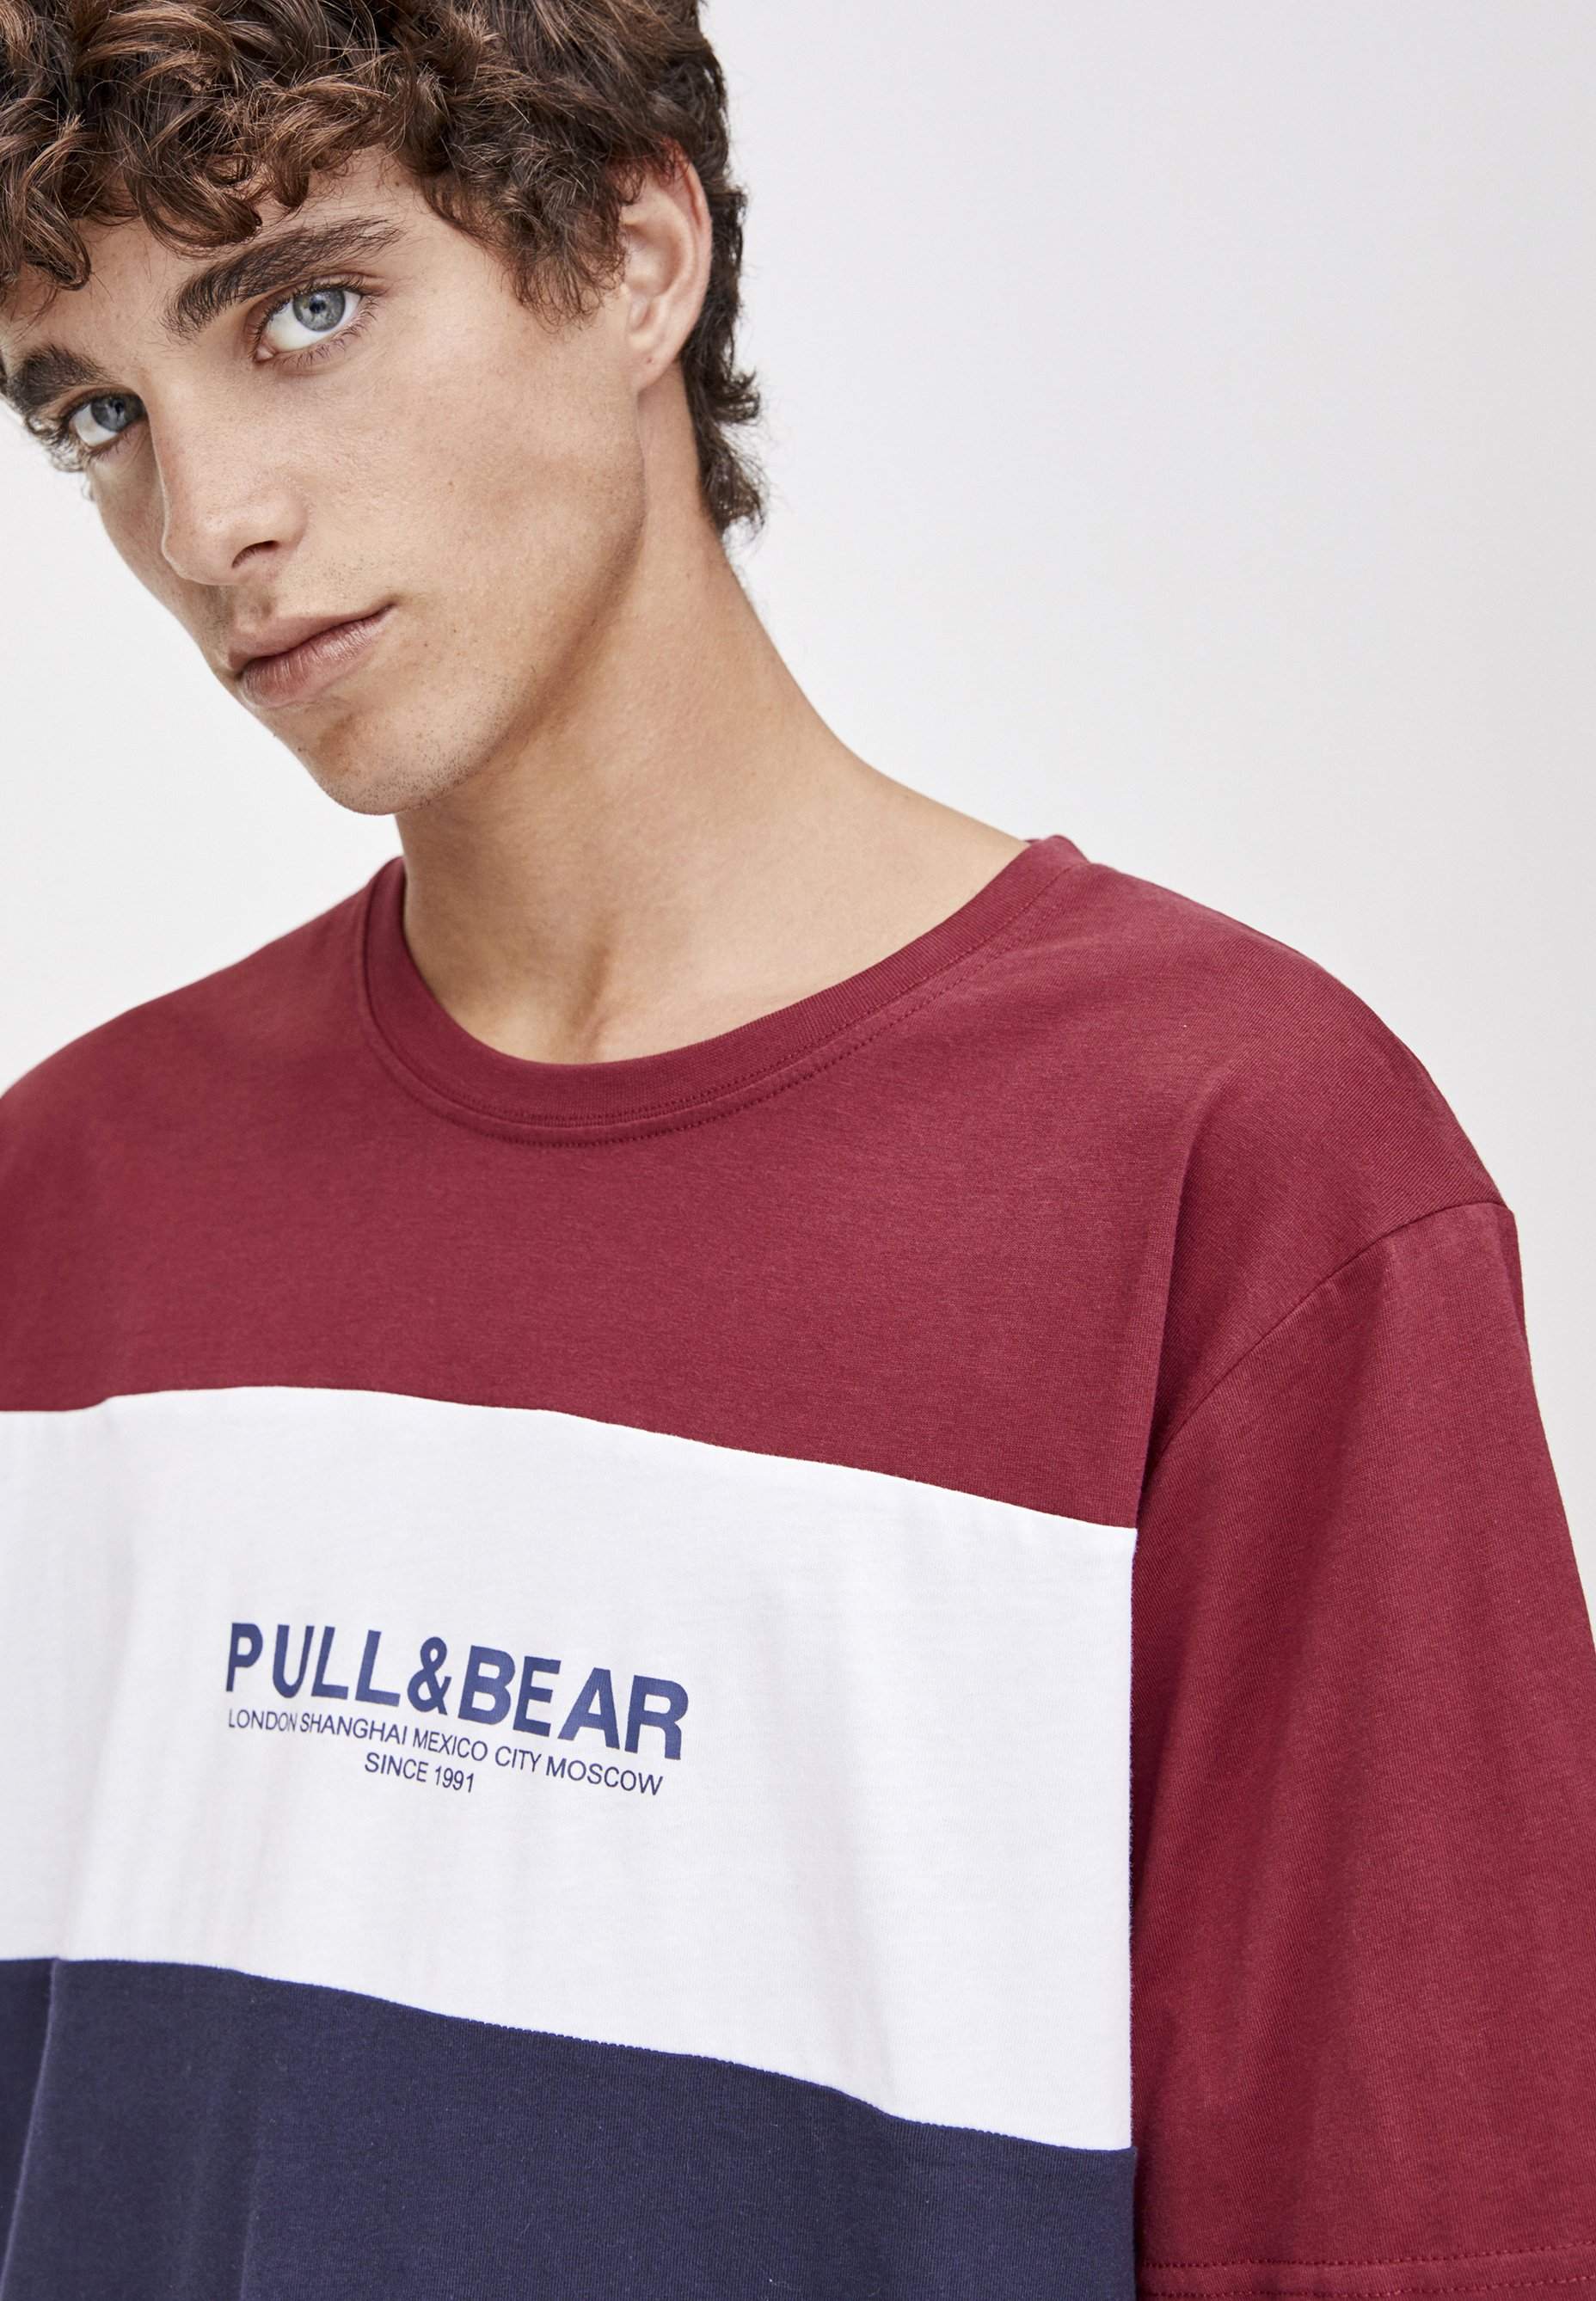 Stampa amp;bear shirt Con T Pull Bordeaux kPuZXiTO